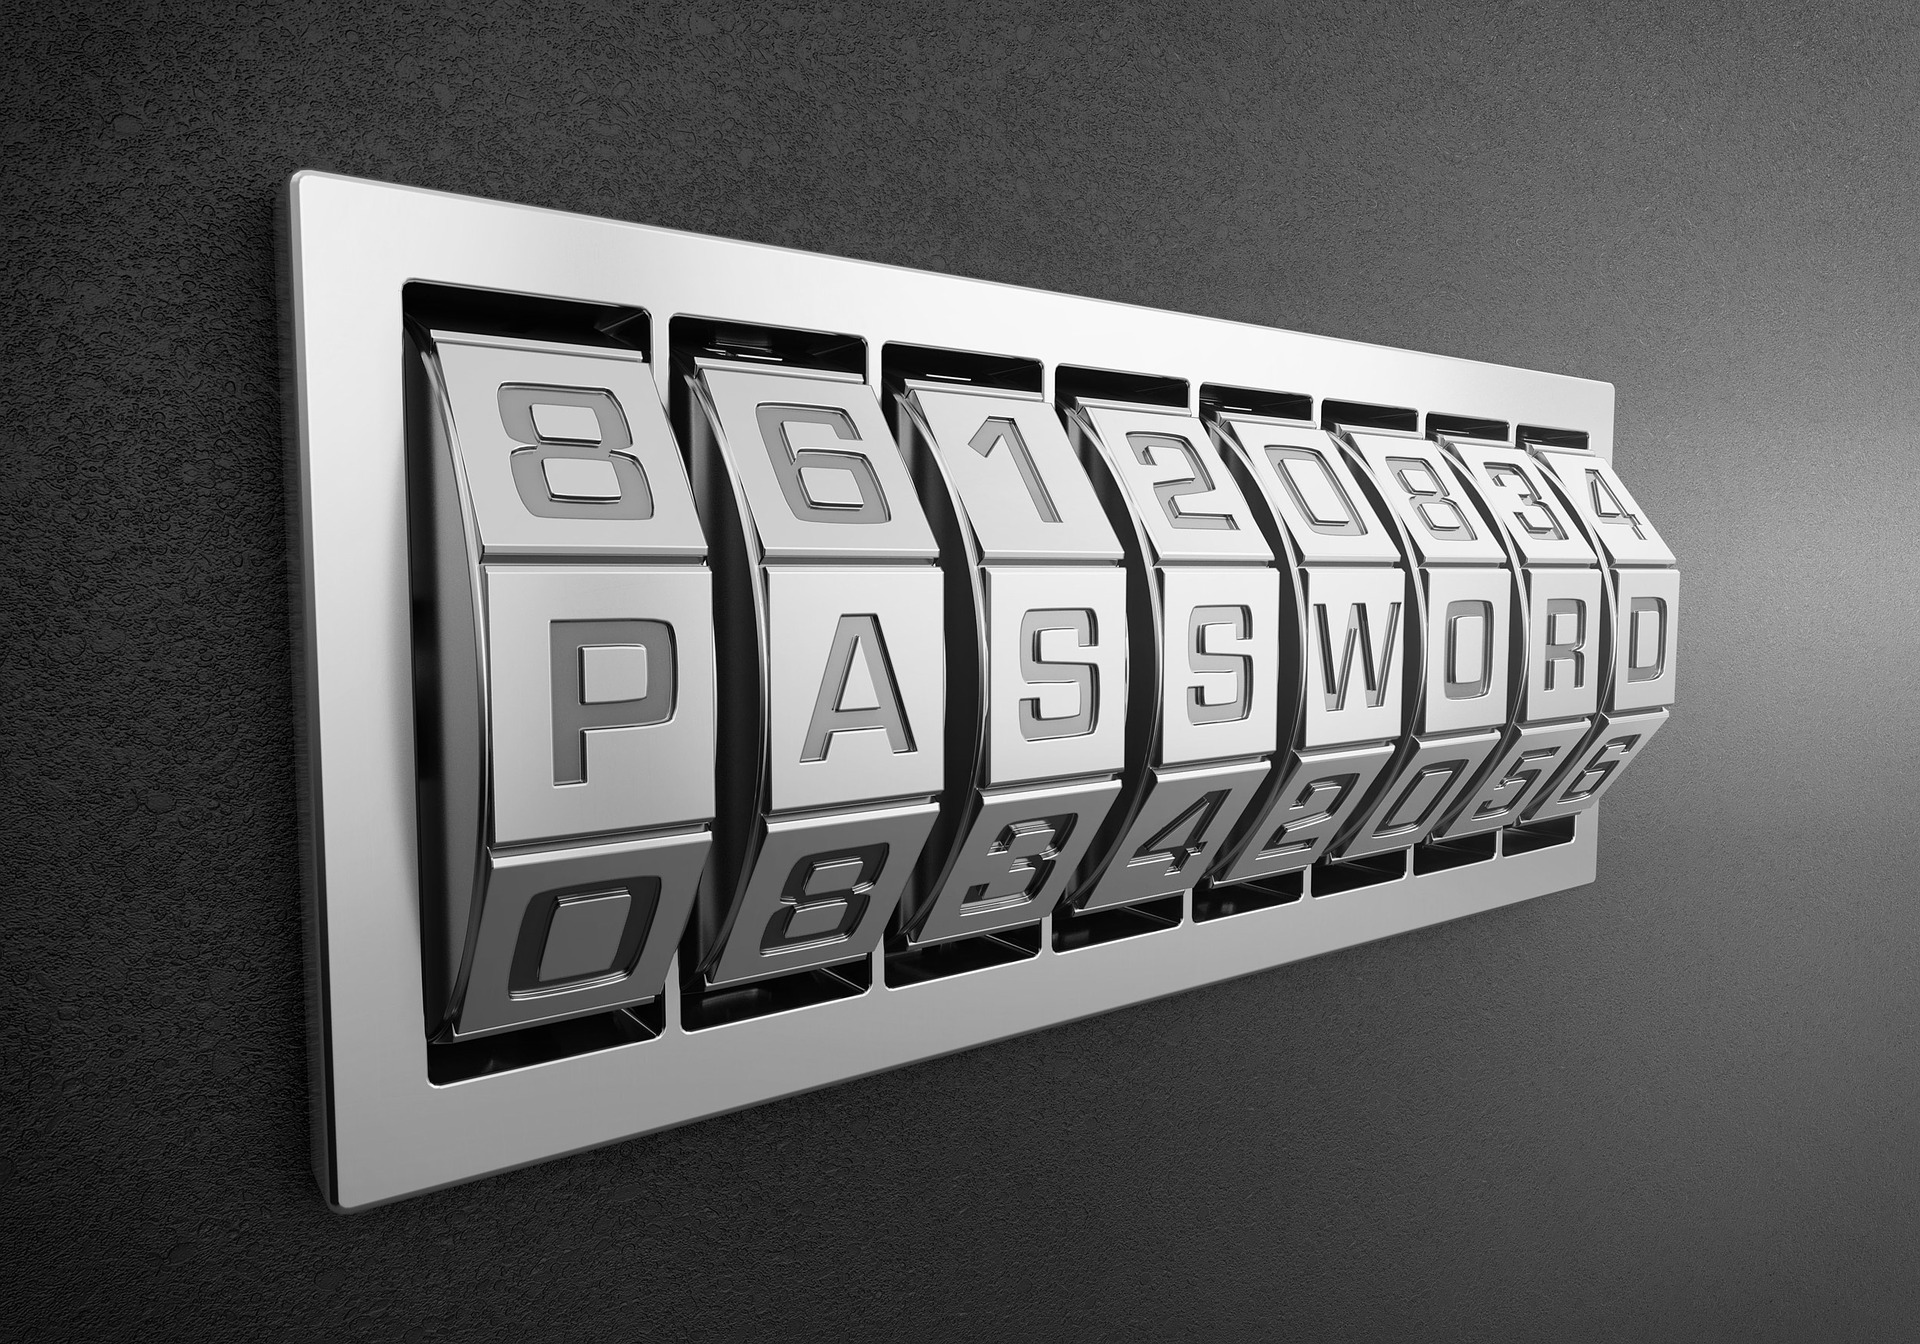 Password for small business security systems Miami, FL